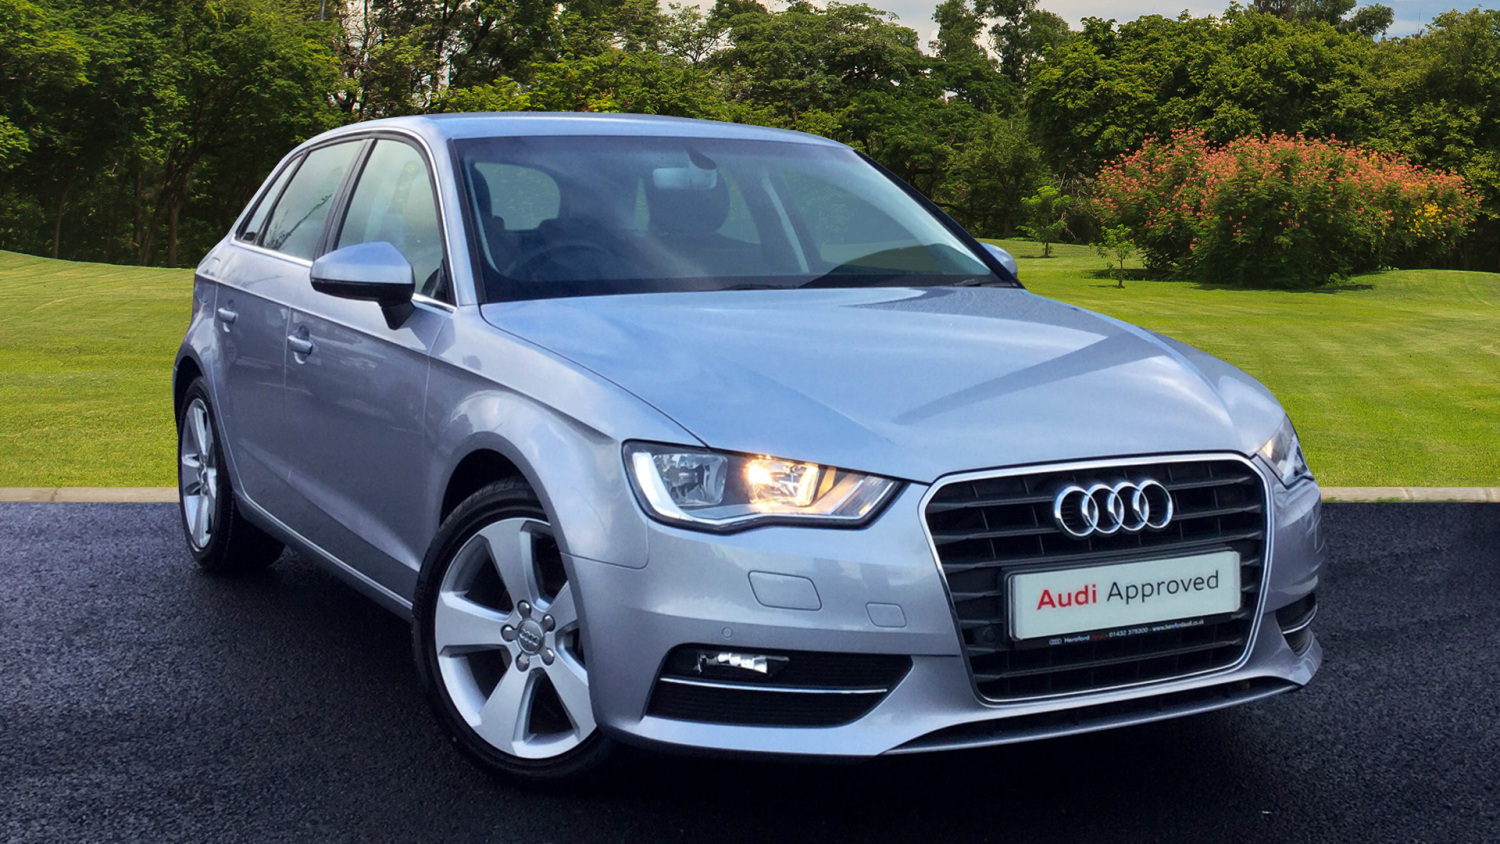 Used Audi A5 Cars for Sale  Motorscouk